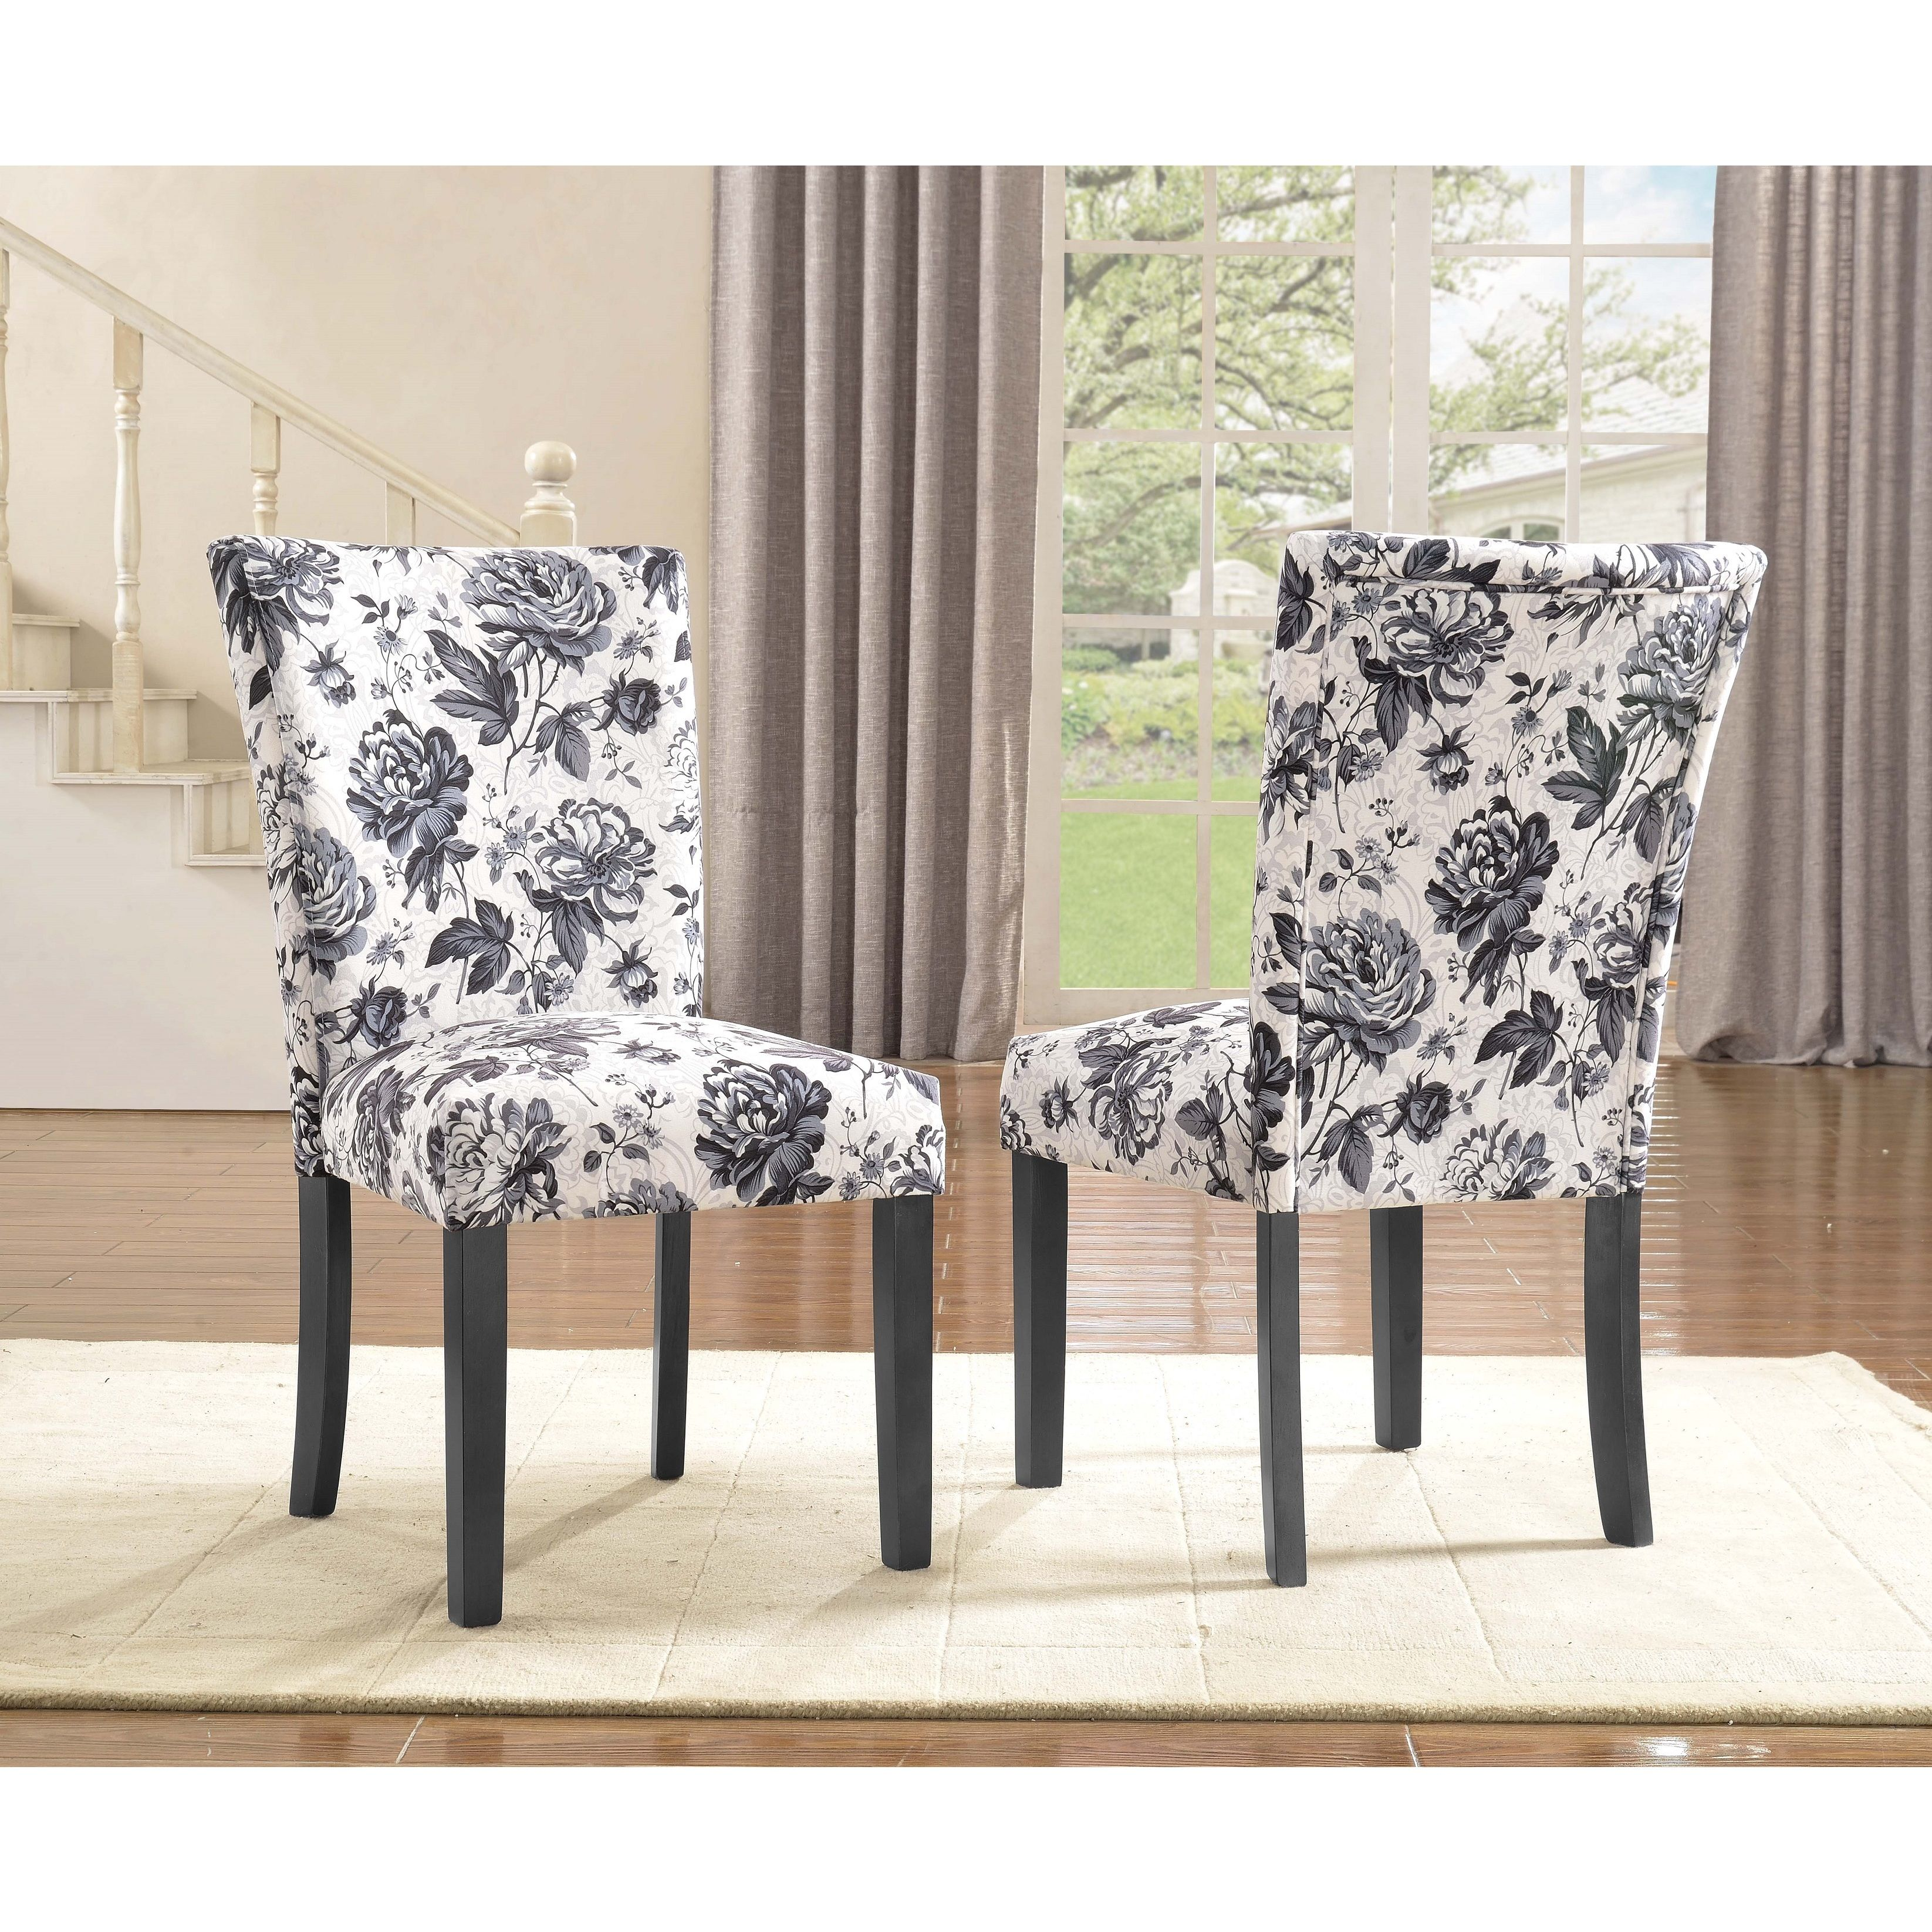 Black And White Dining Room Chairs: The Beautiful Fabric Upholstery And Black Finish On The